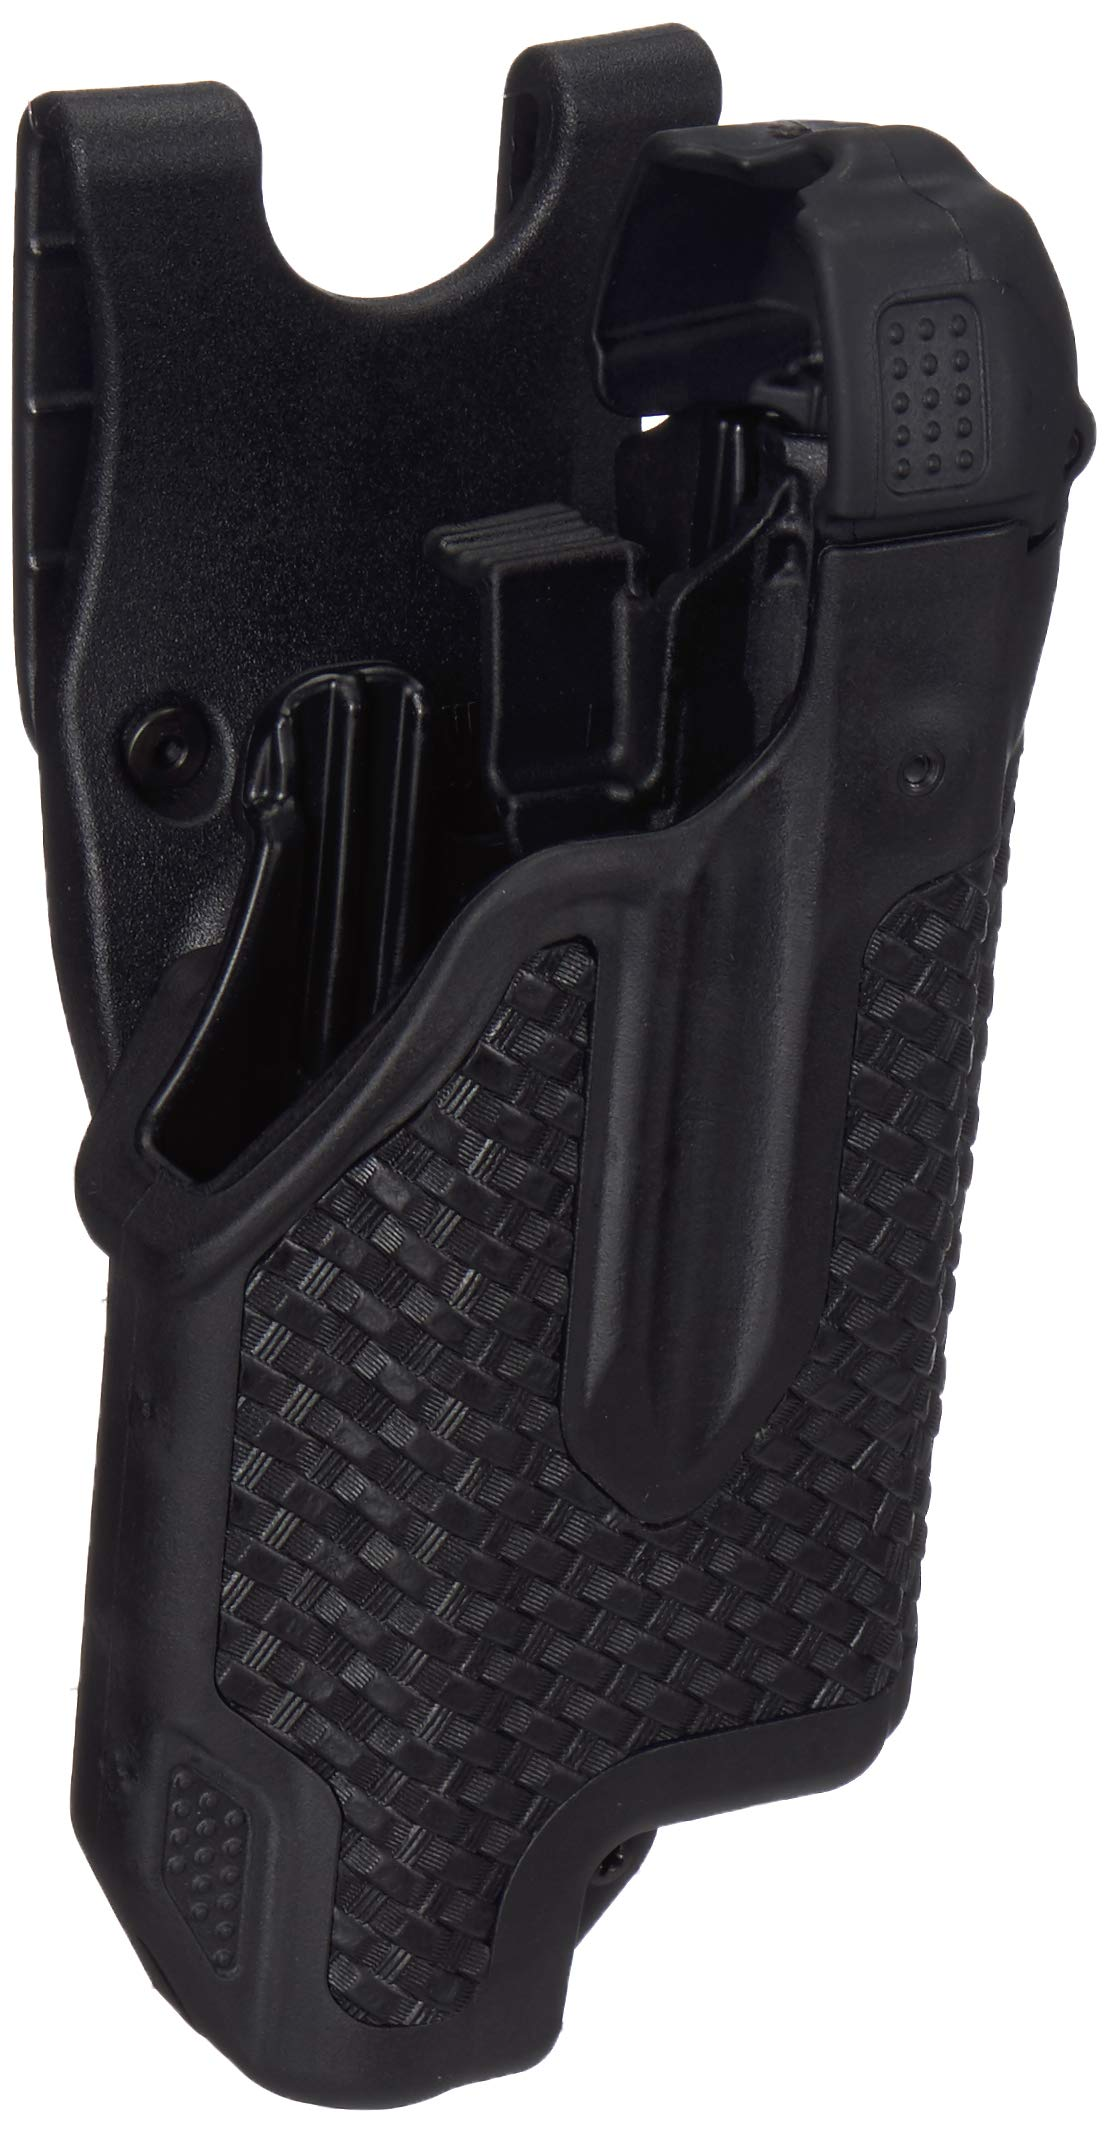 BLACKHAWK EPOCH Level 3 Light Bearing Duty Holster- Basketweave Finish